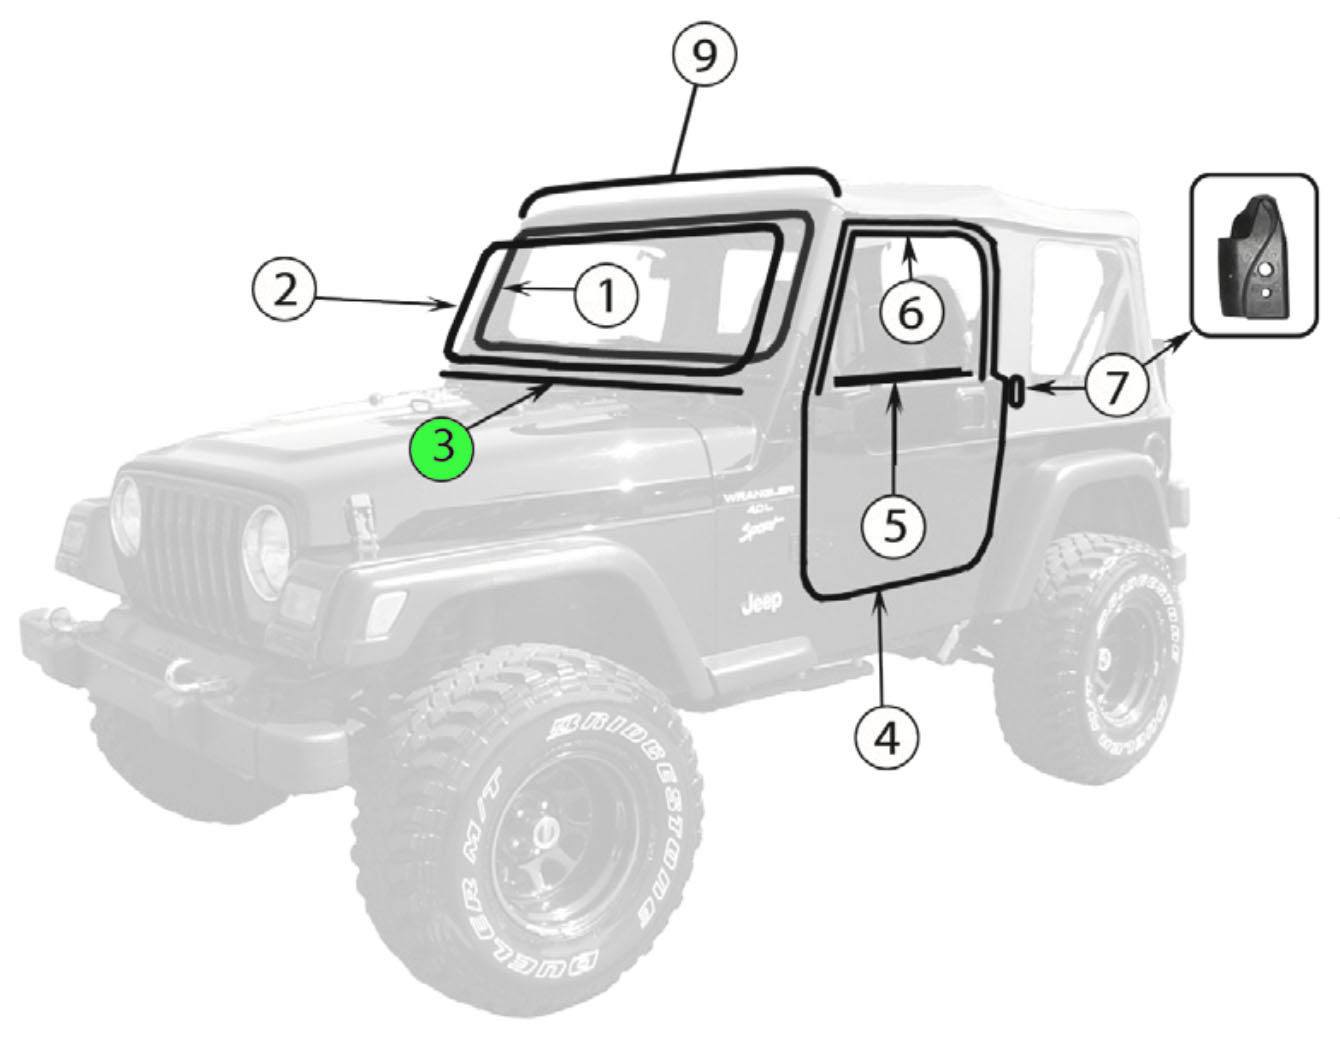 Jeep TJ Wrangler Windshield Frame to Cowl Seal